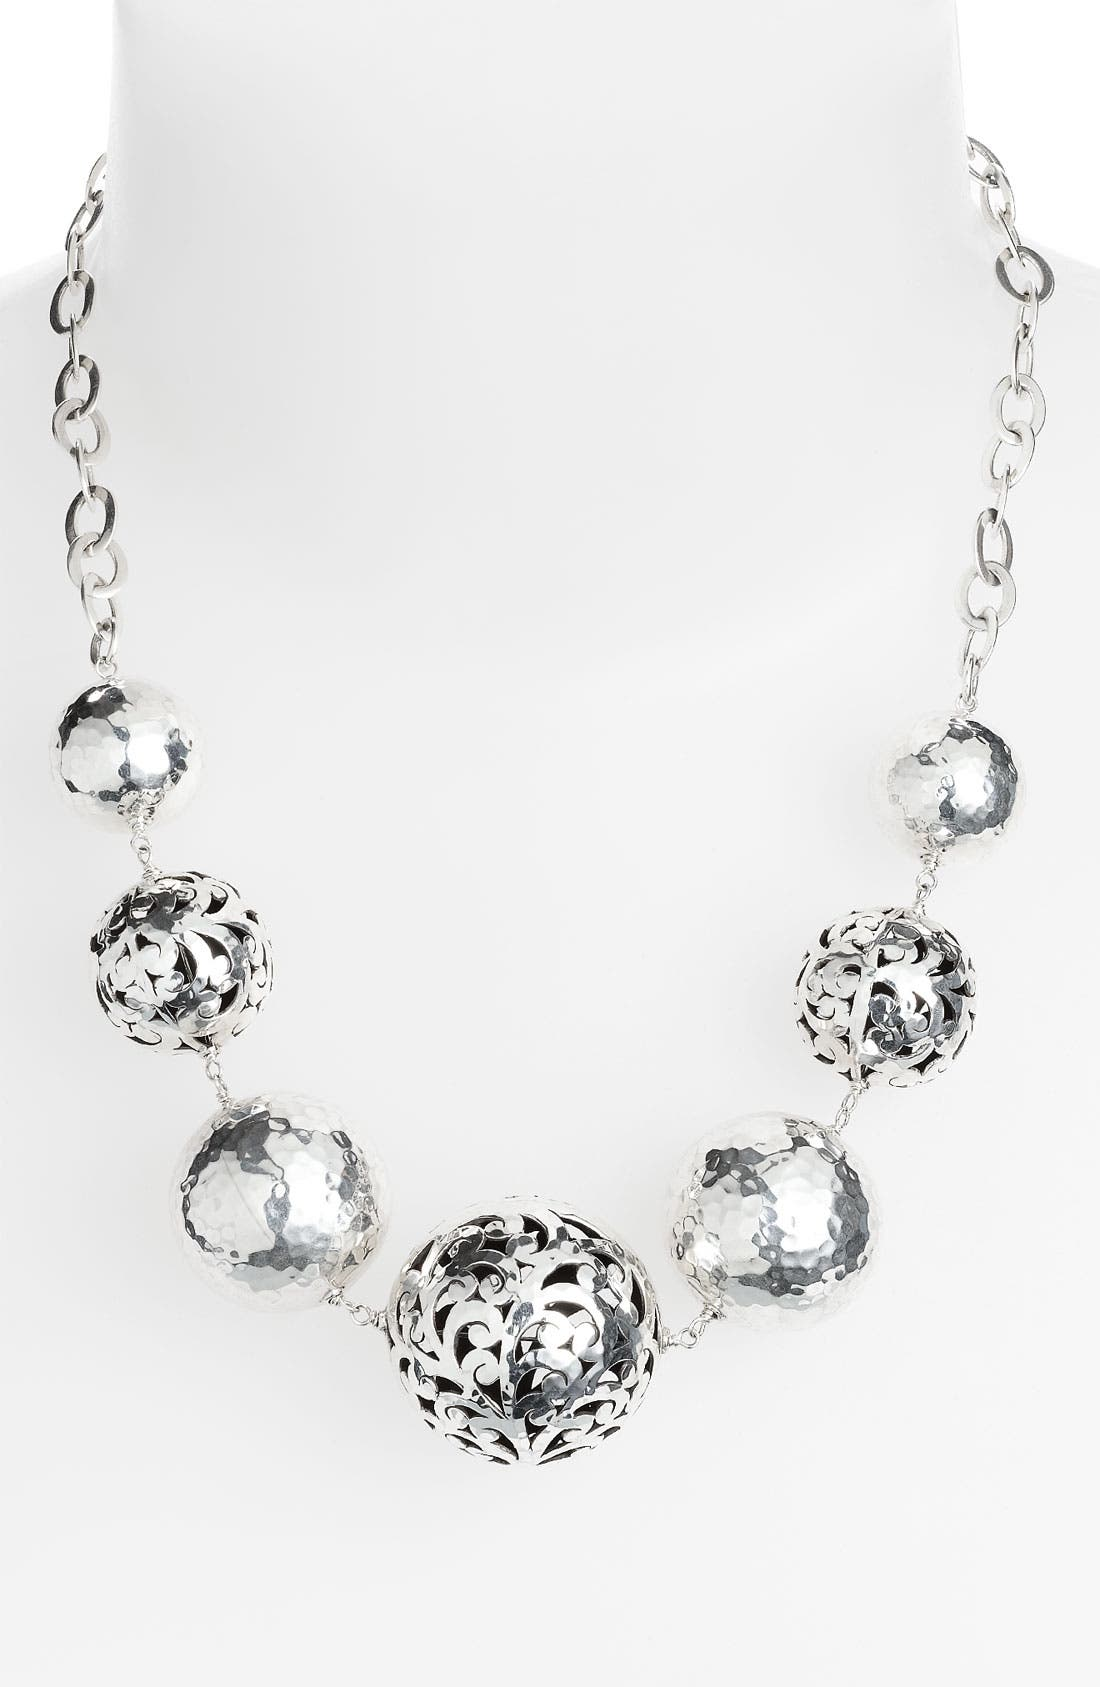 Alternate Image 1 Selected - Lois Hill 'Ball & Chain' Graduated Bead Necklace